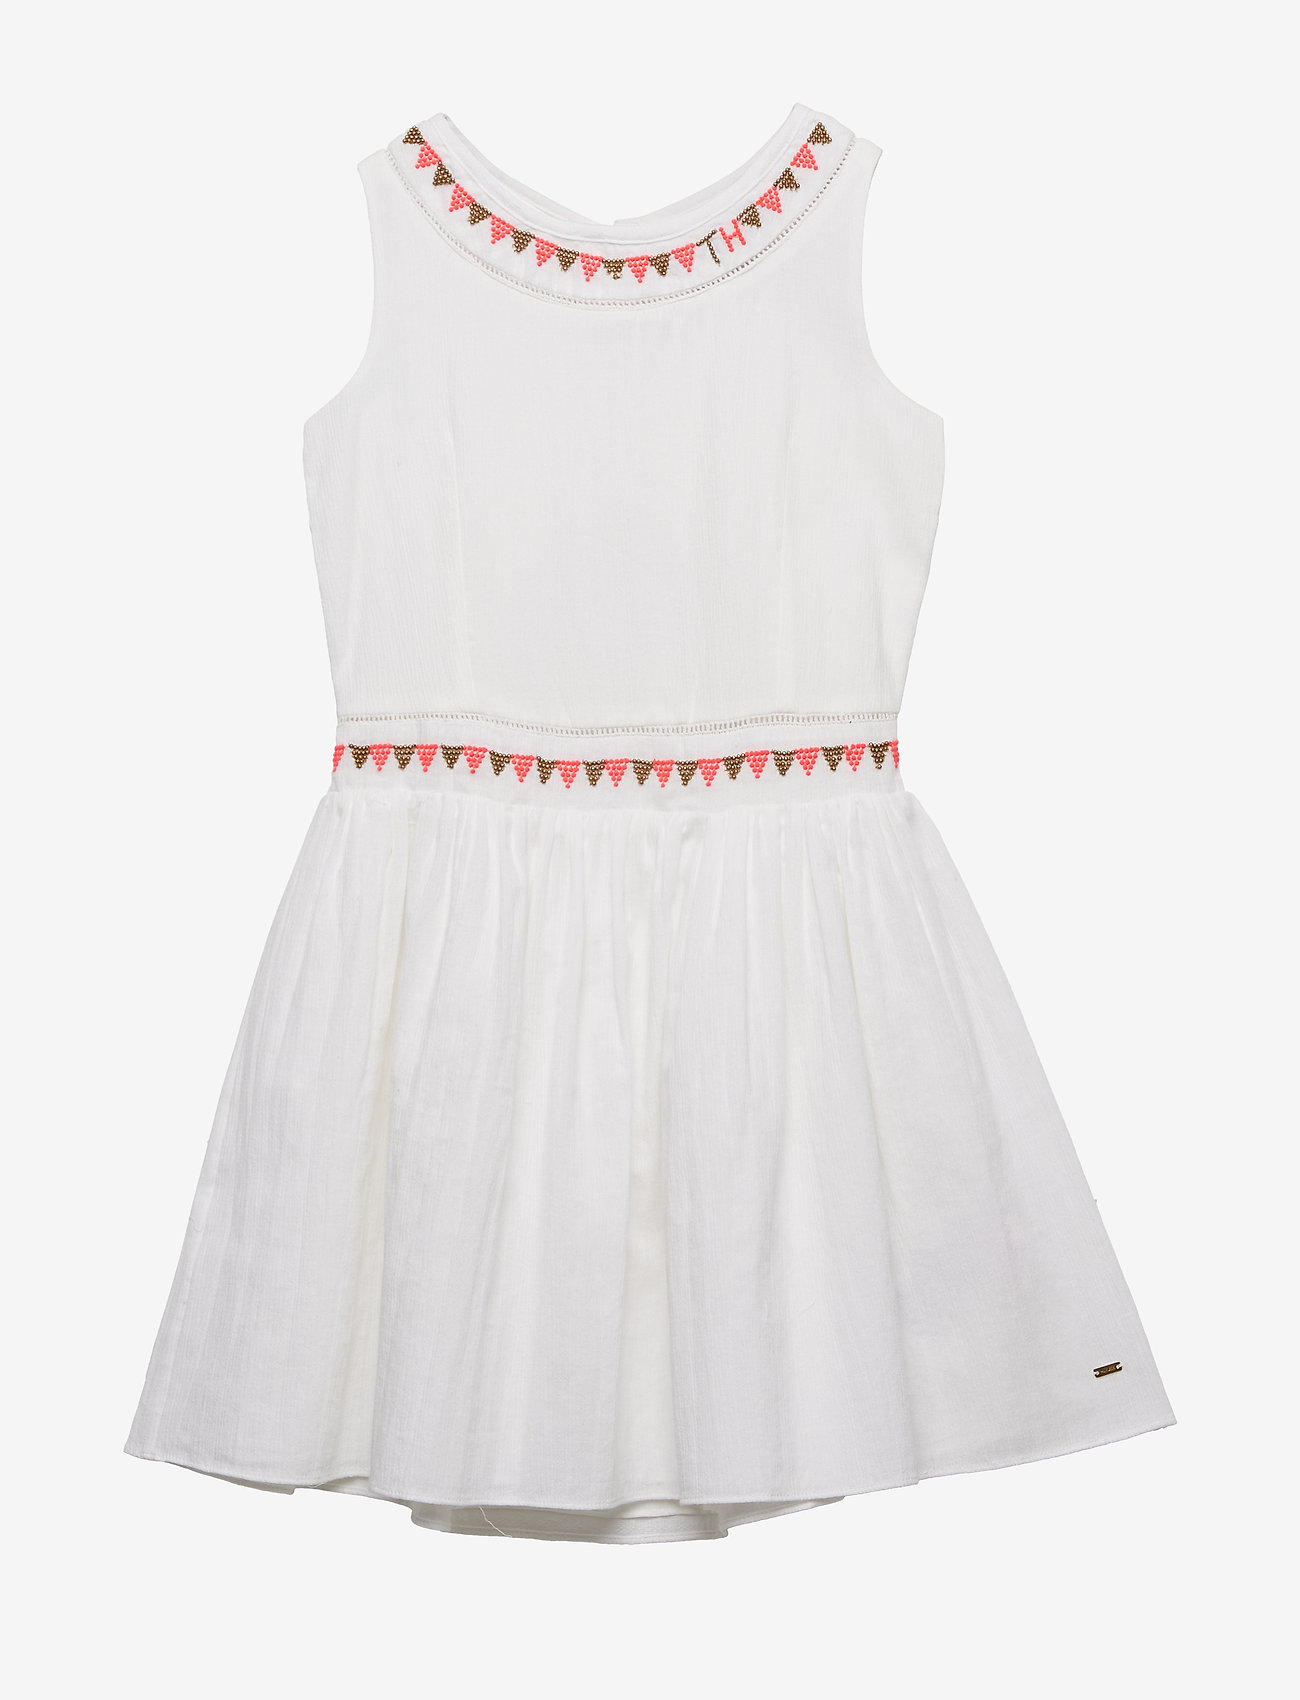 Tommy Hilfiger - ENDEARING SUN DRESS - dresses - bright white - 0